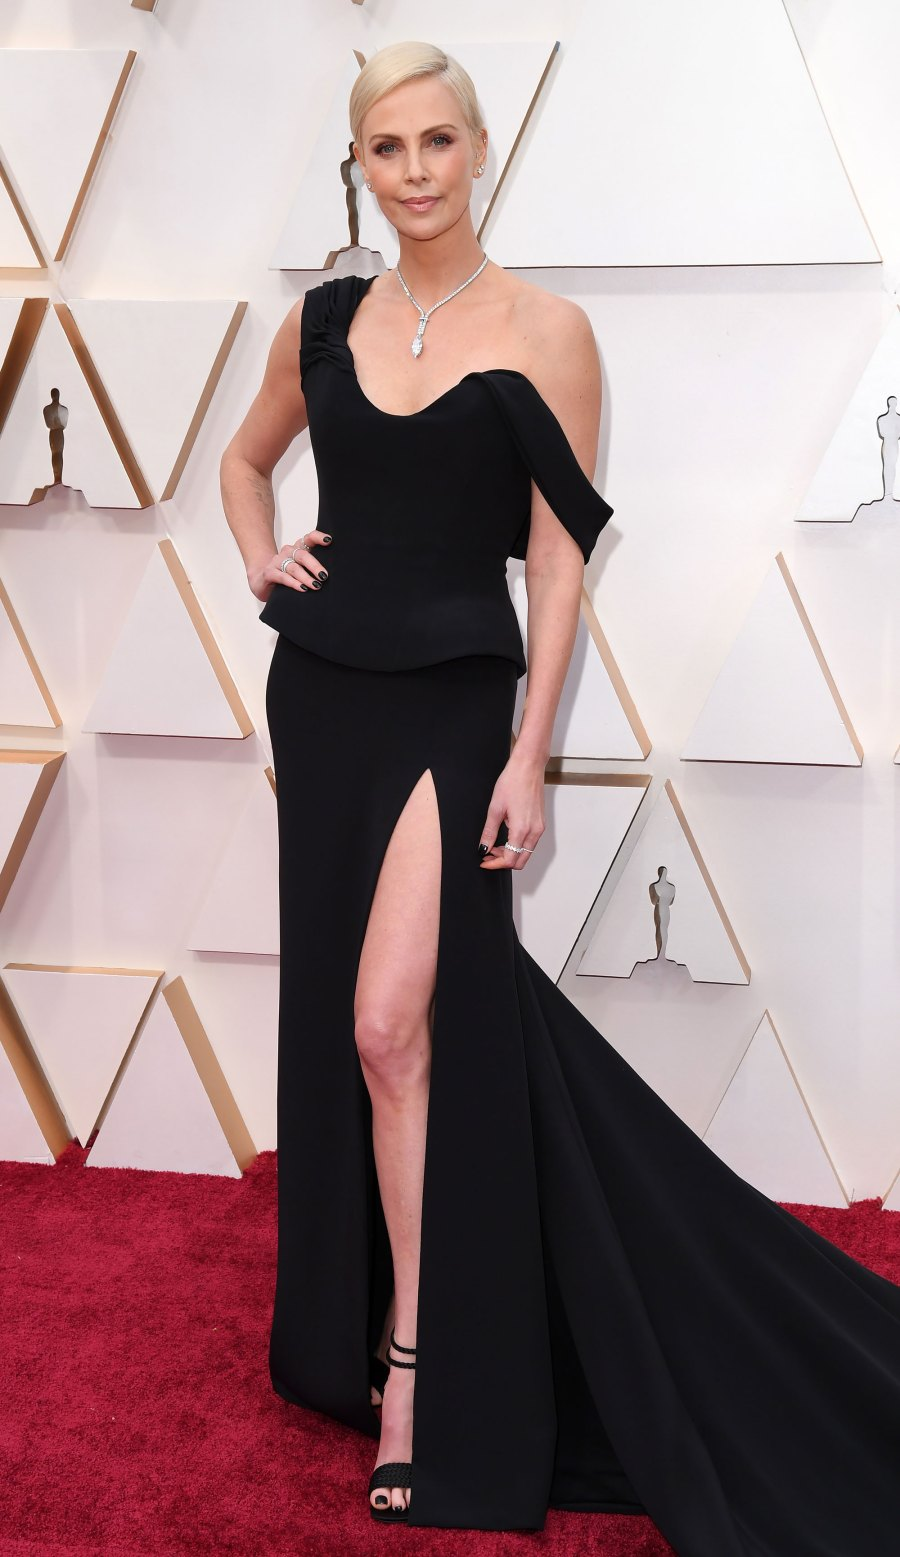 Oscars 2020 Arrivals - Charlize Theron